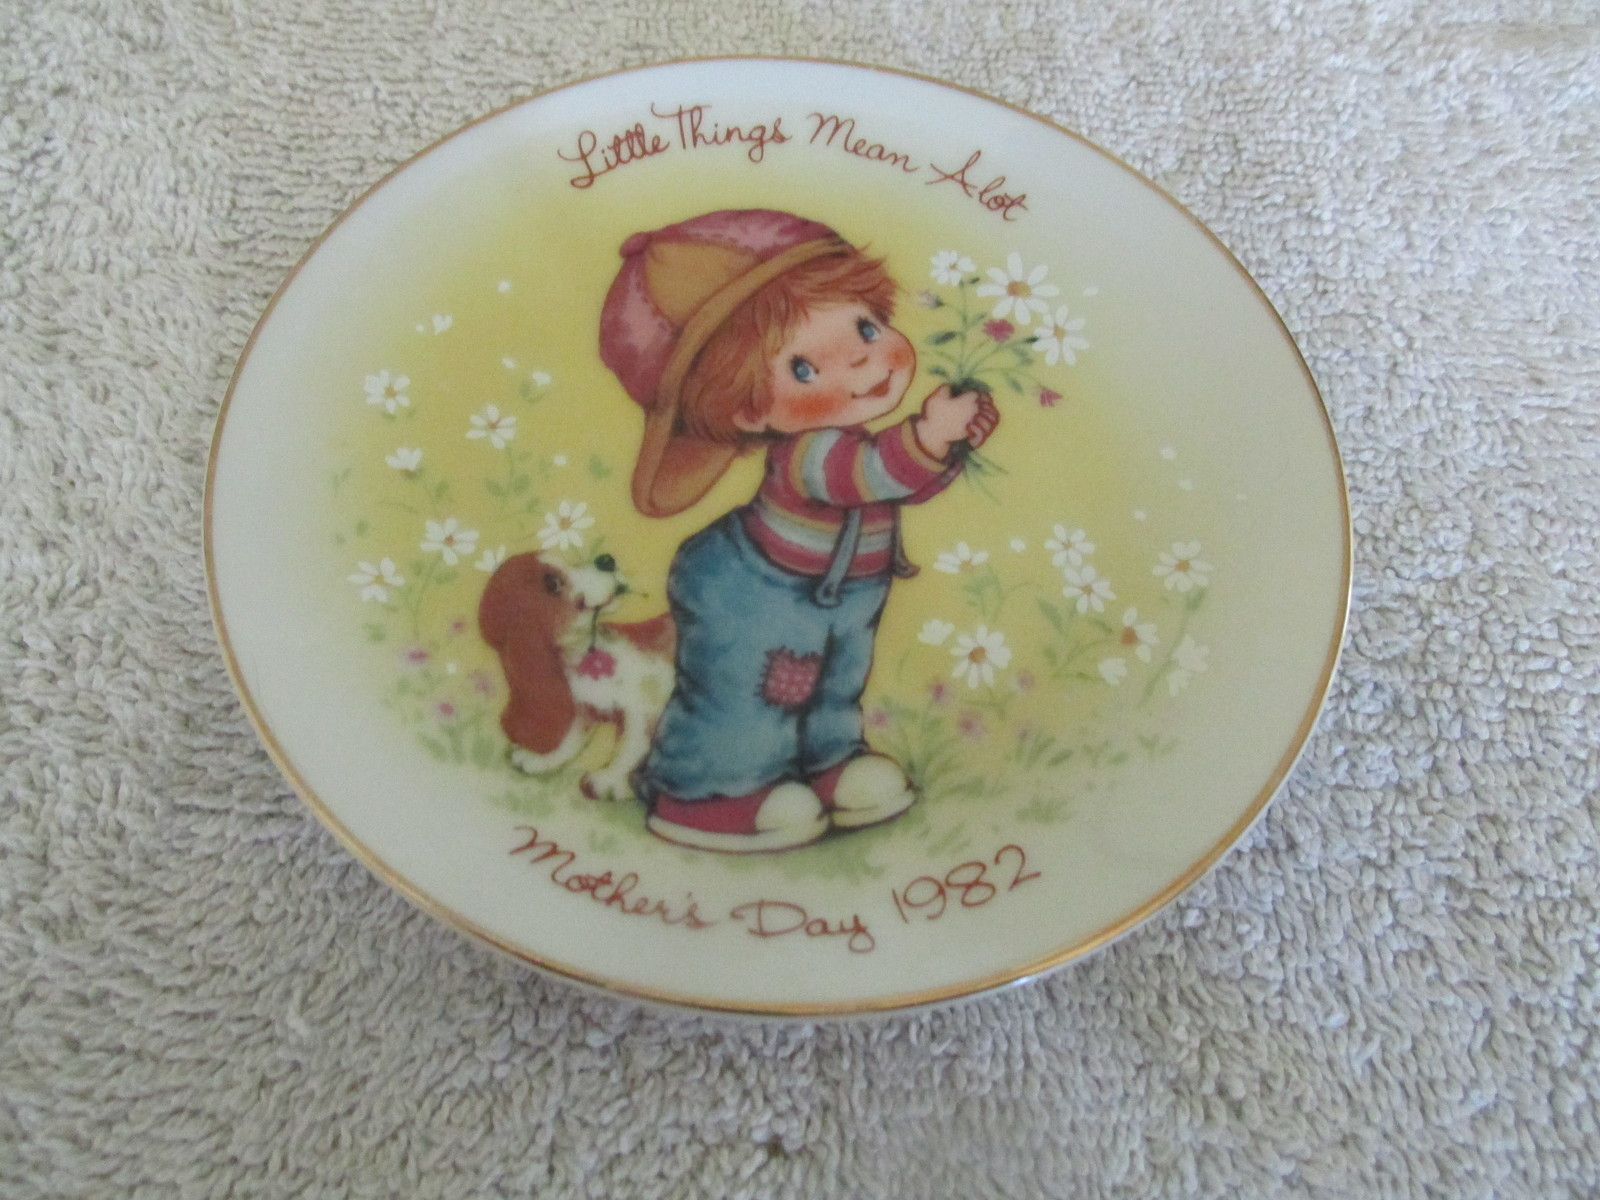 Avon 1982 Mothers Day Plate Little Things Mean Alot